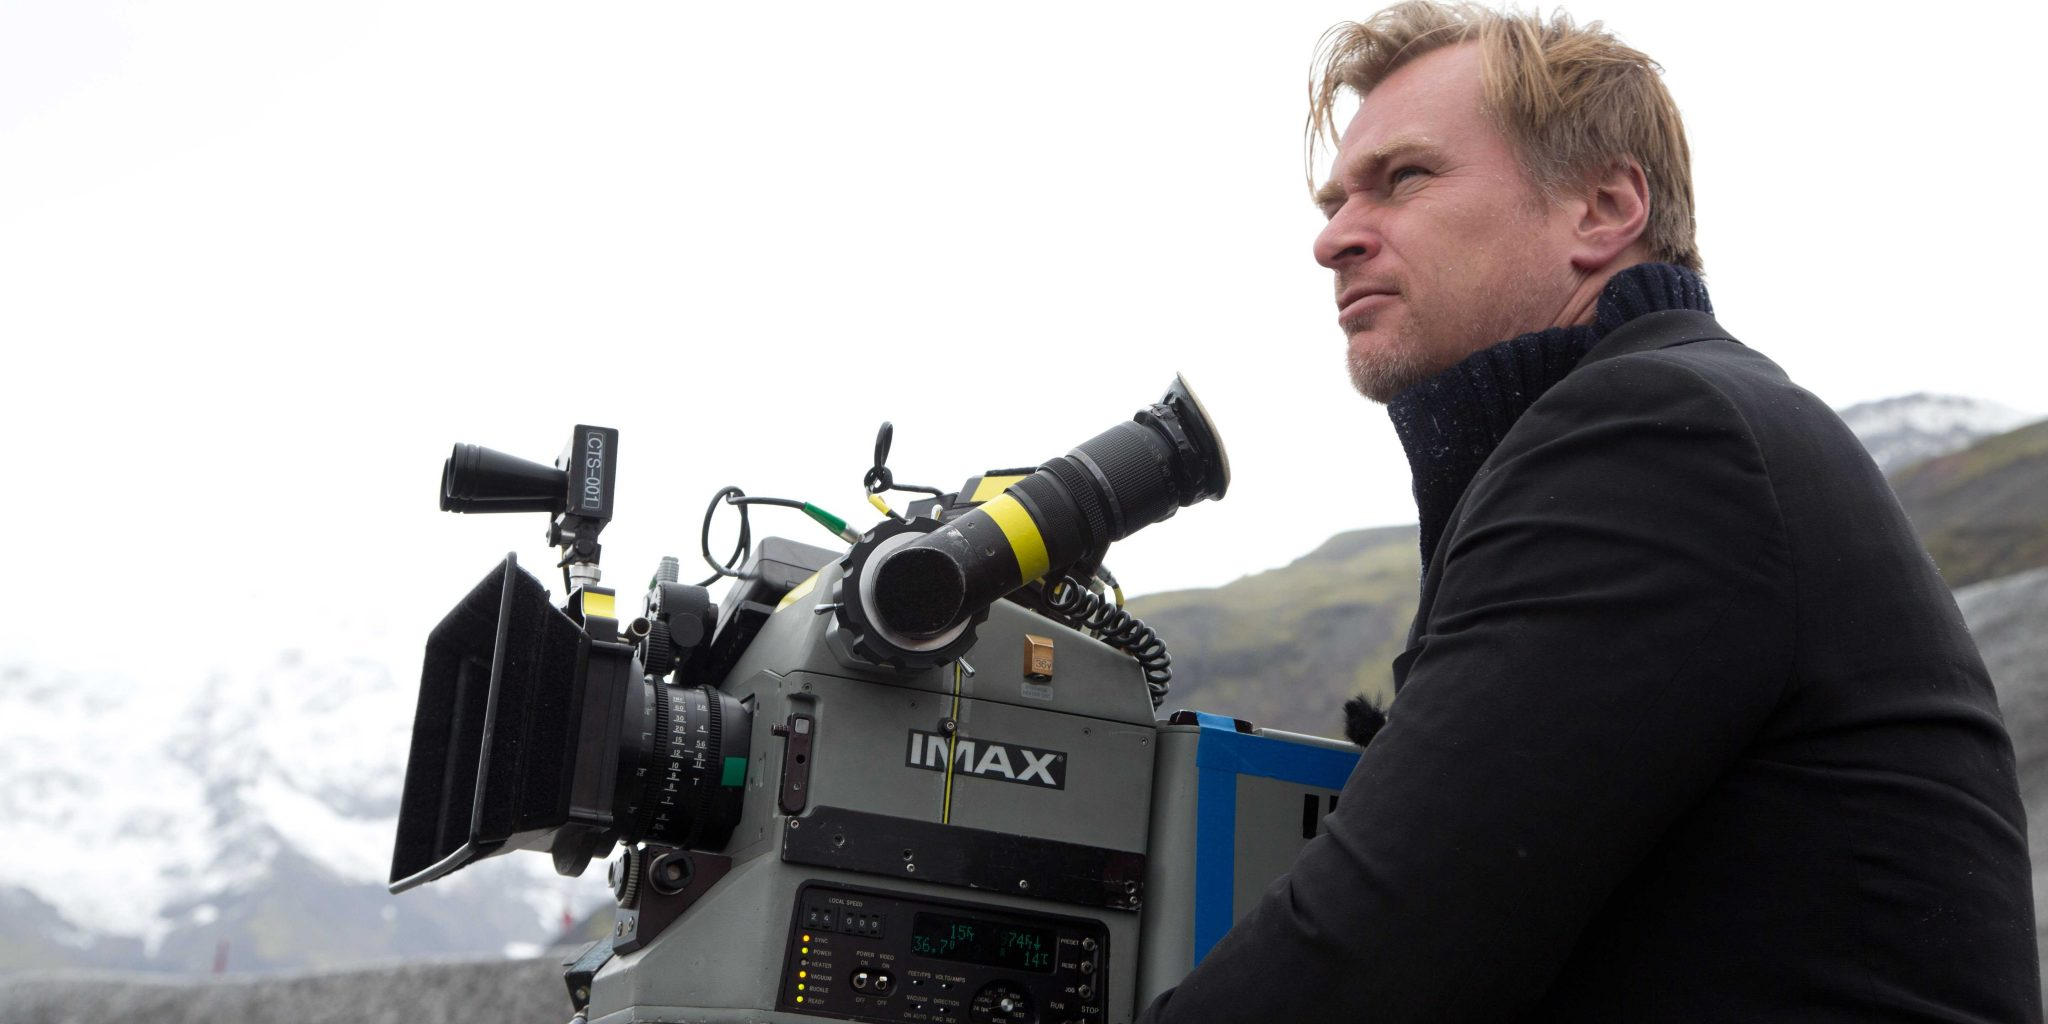 Christopher Nolan defends Interstellar's sound mix issues